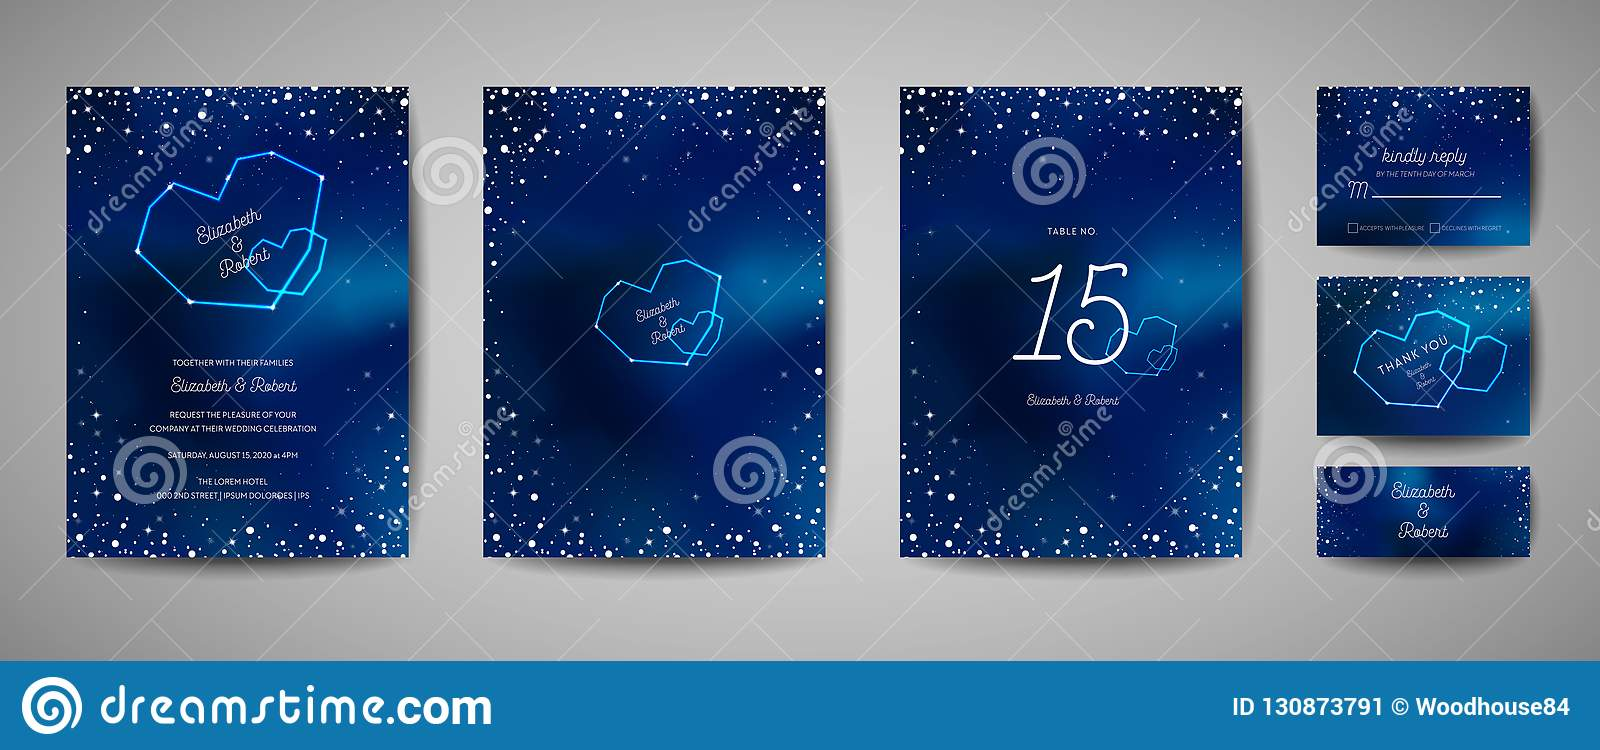 Starry Night Sky Trendy Wedding Invitation Card, Save the Date Celestial Template with Galaxy, Space, Stars